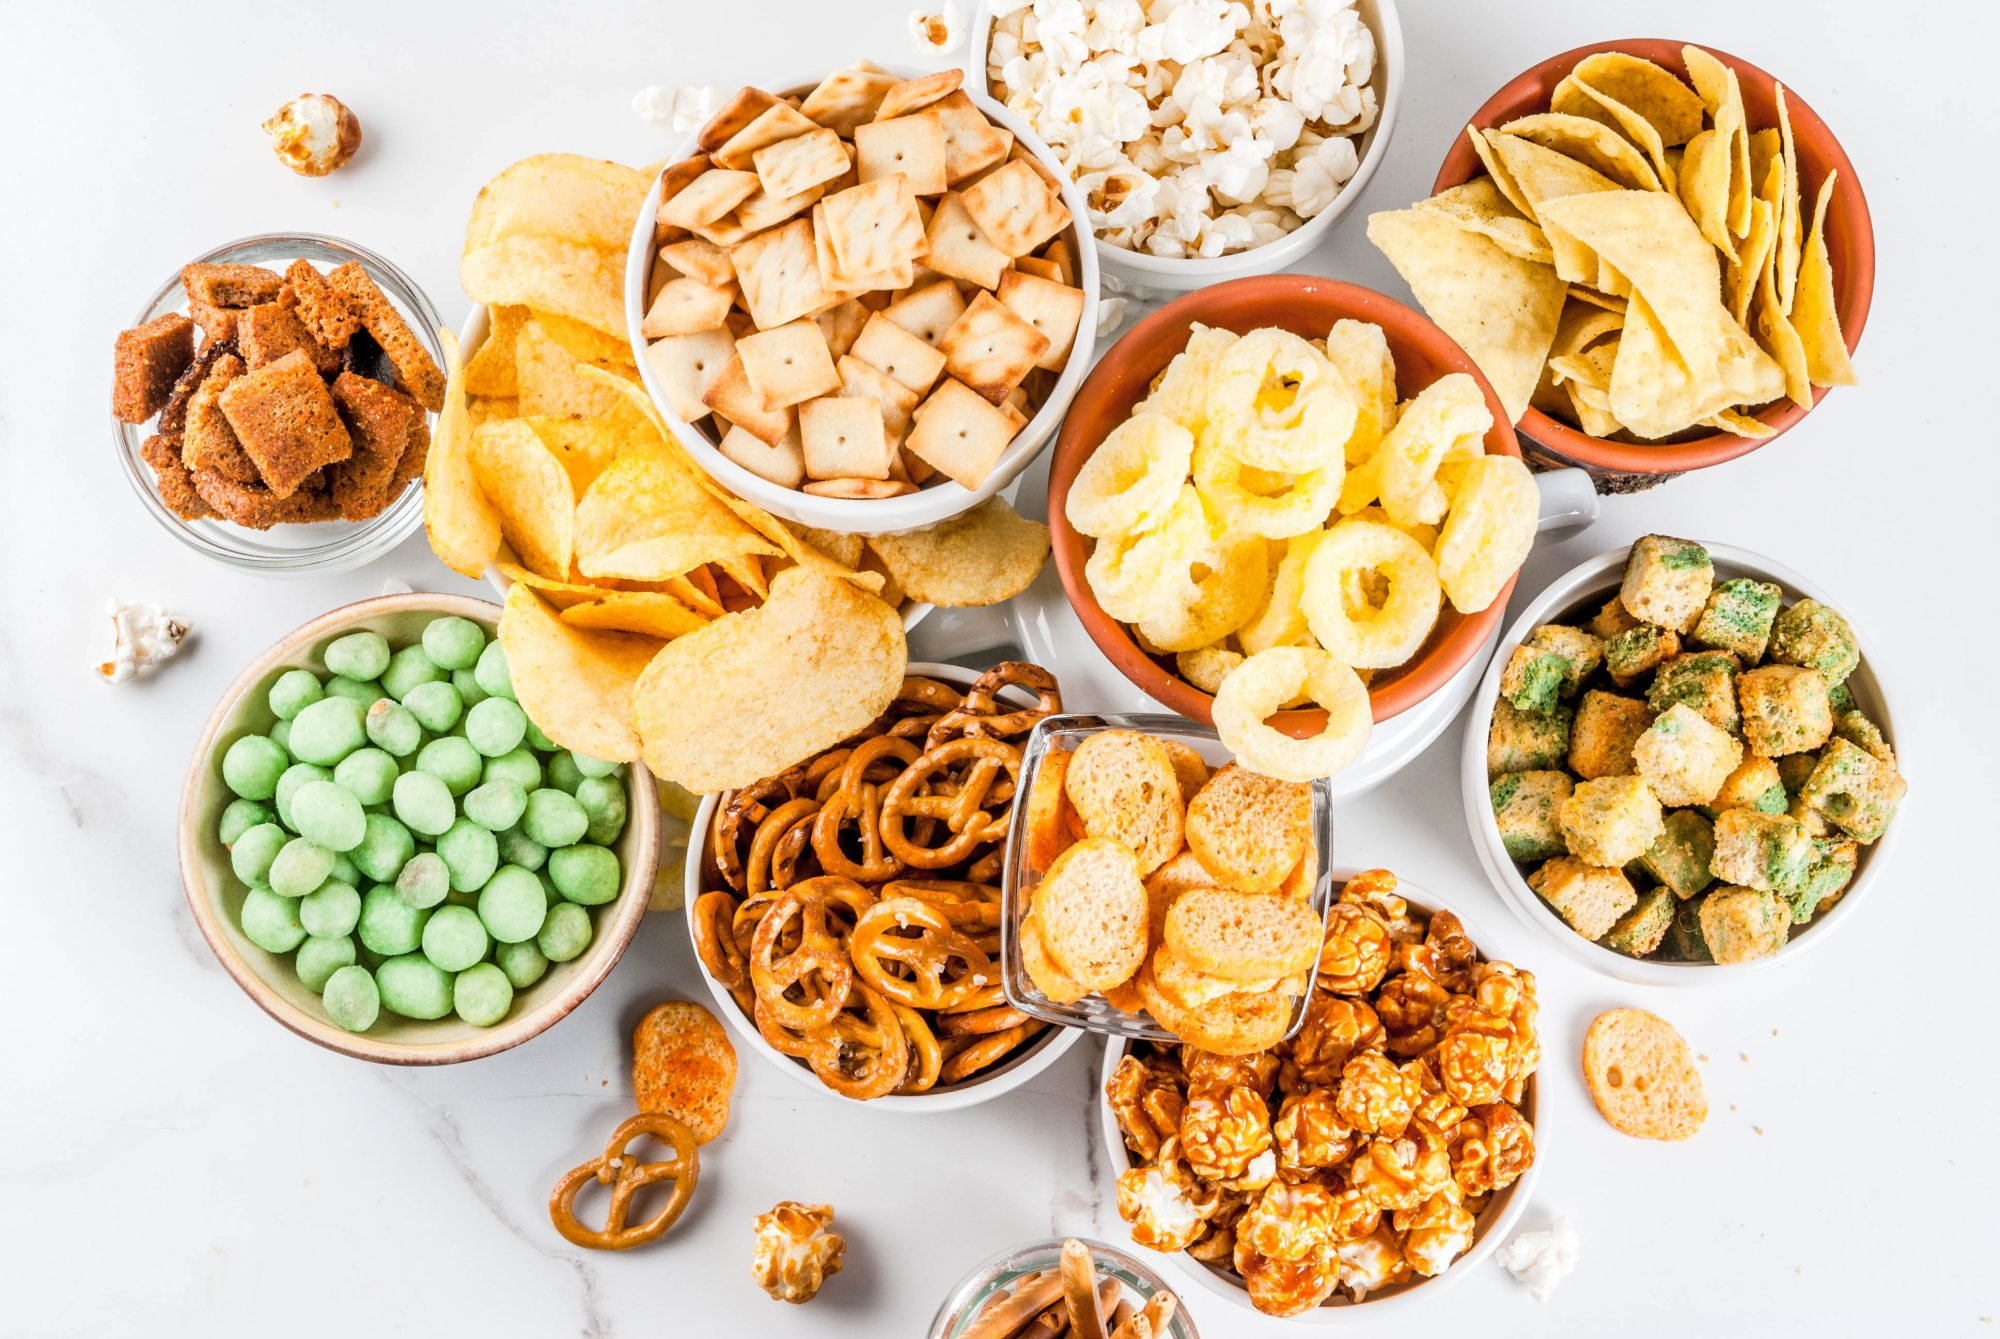 overhead image of savory and sweet snacks in bowls